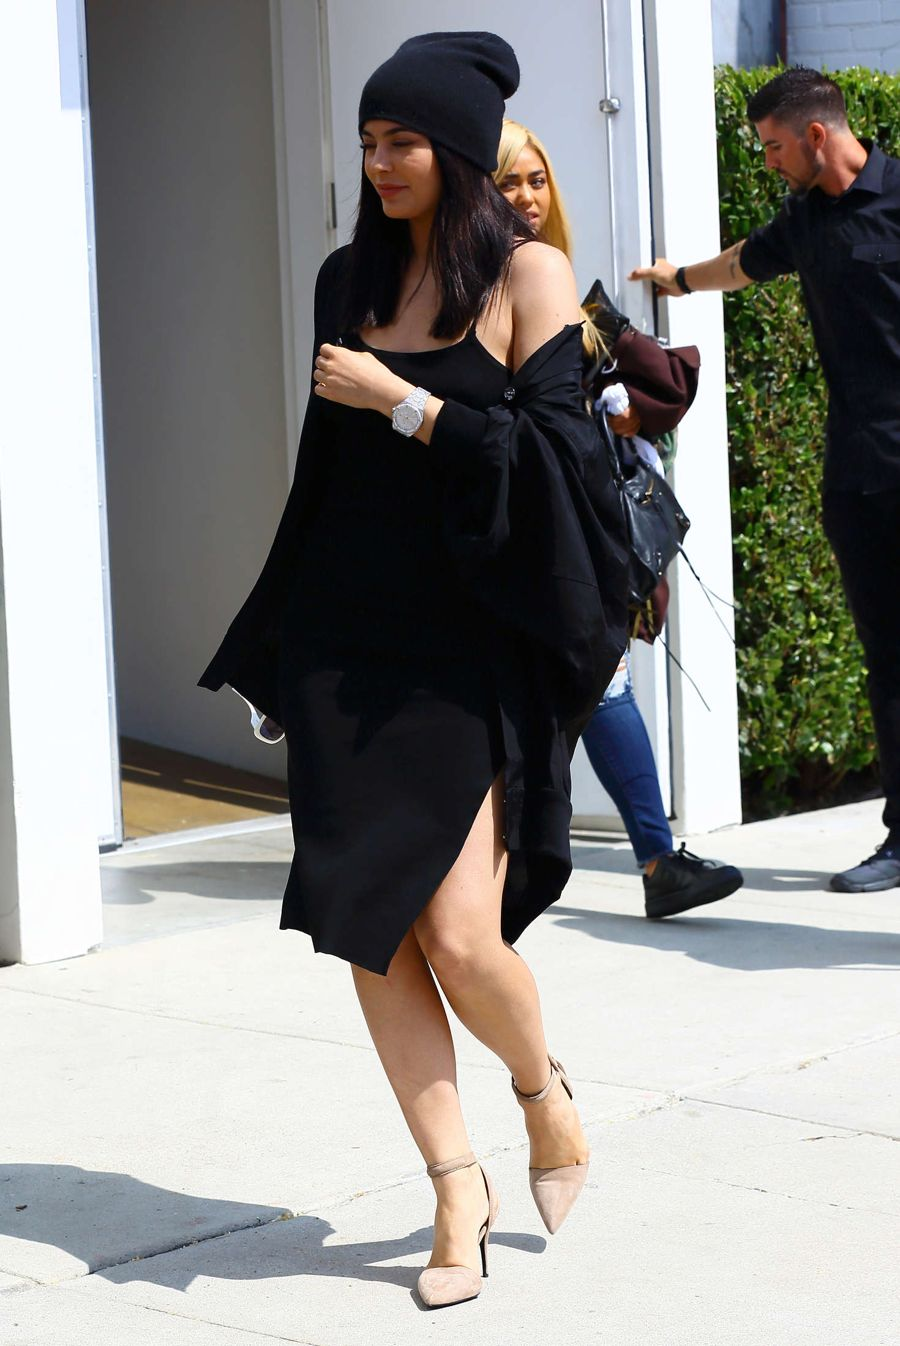 Kylie Jenner in Black Dress Out in Los Angeles